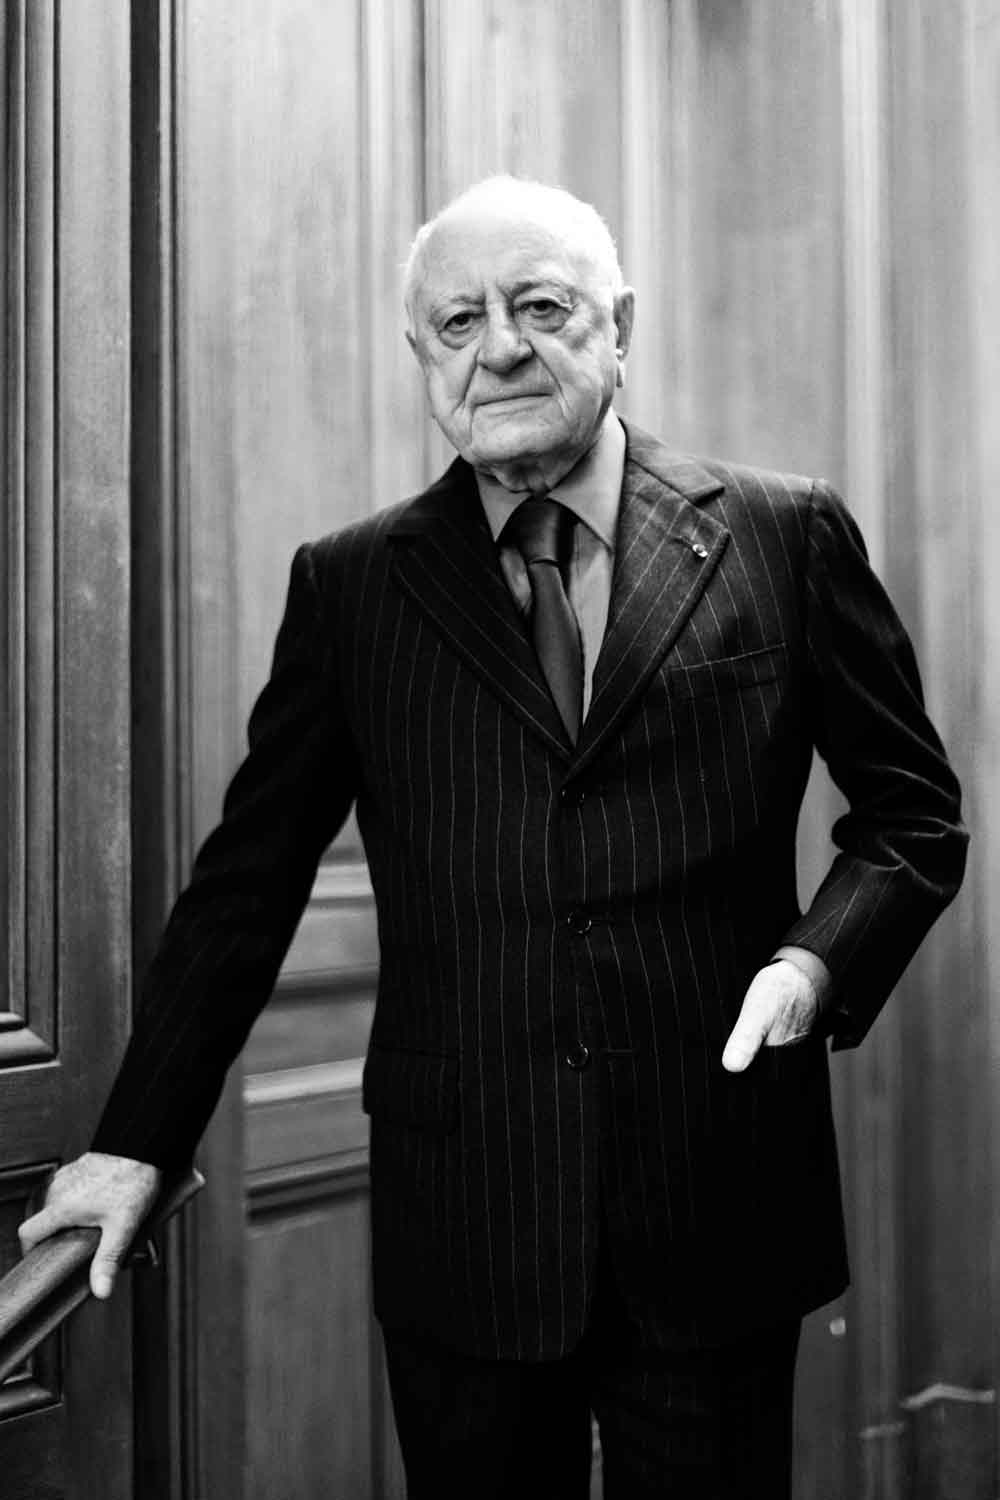 Pierre Bergé, the co-founder of Yves Saint Laurent, passed away this week.